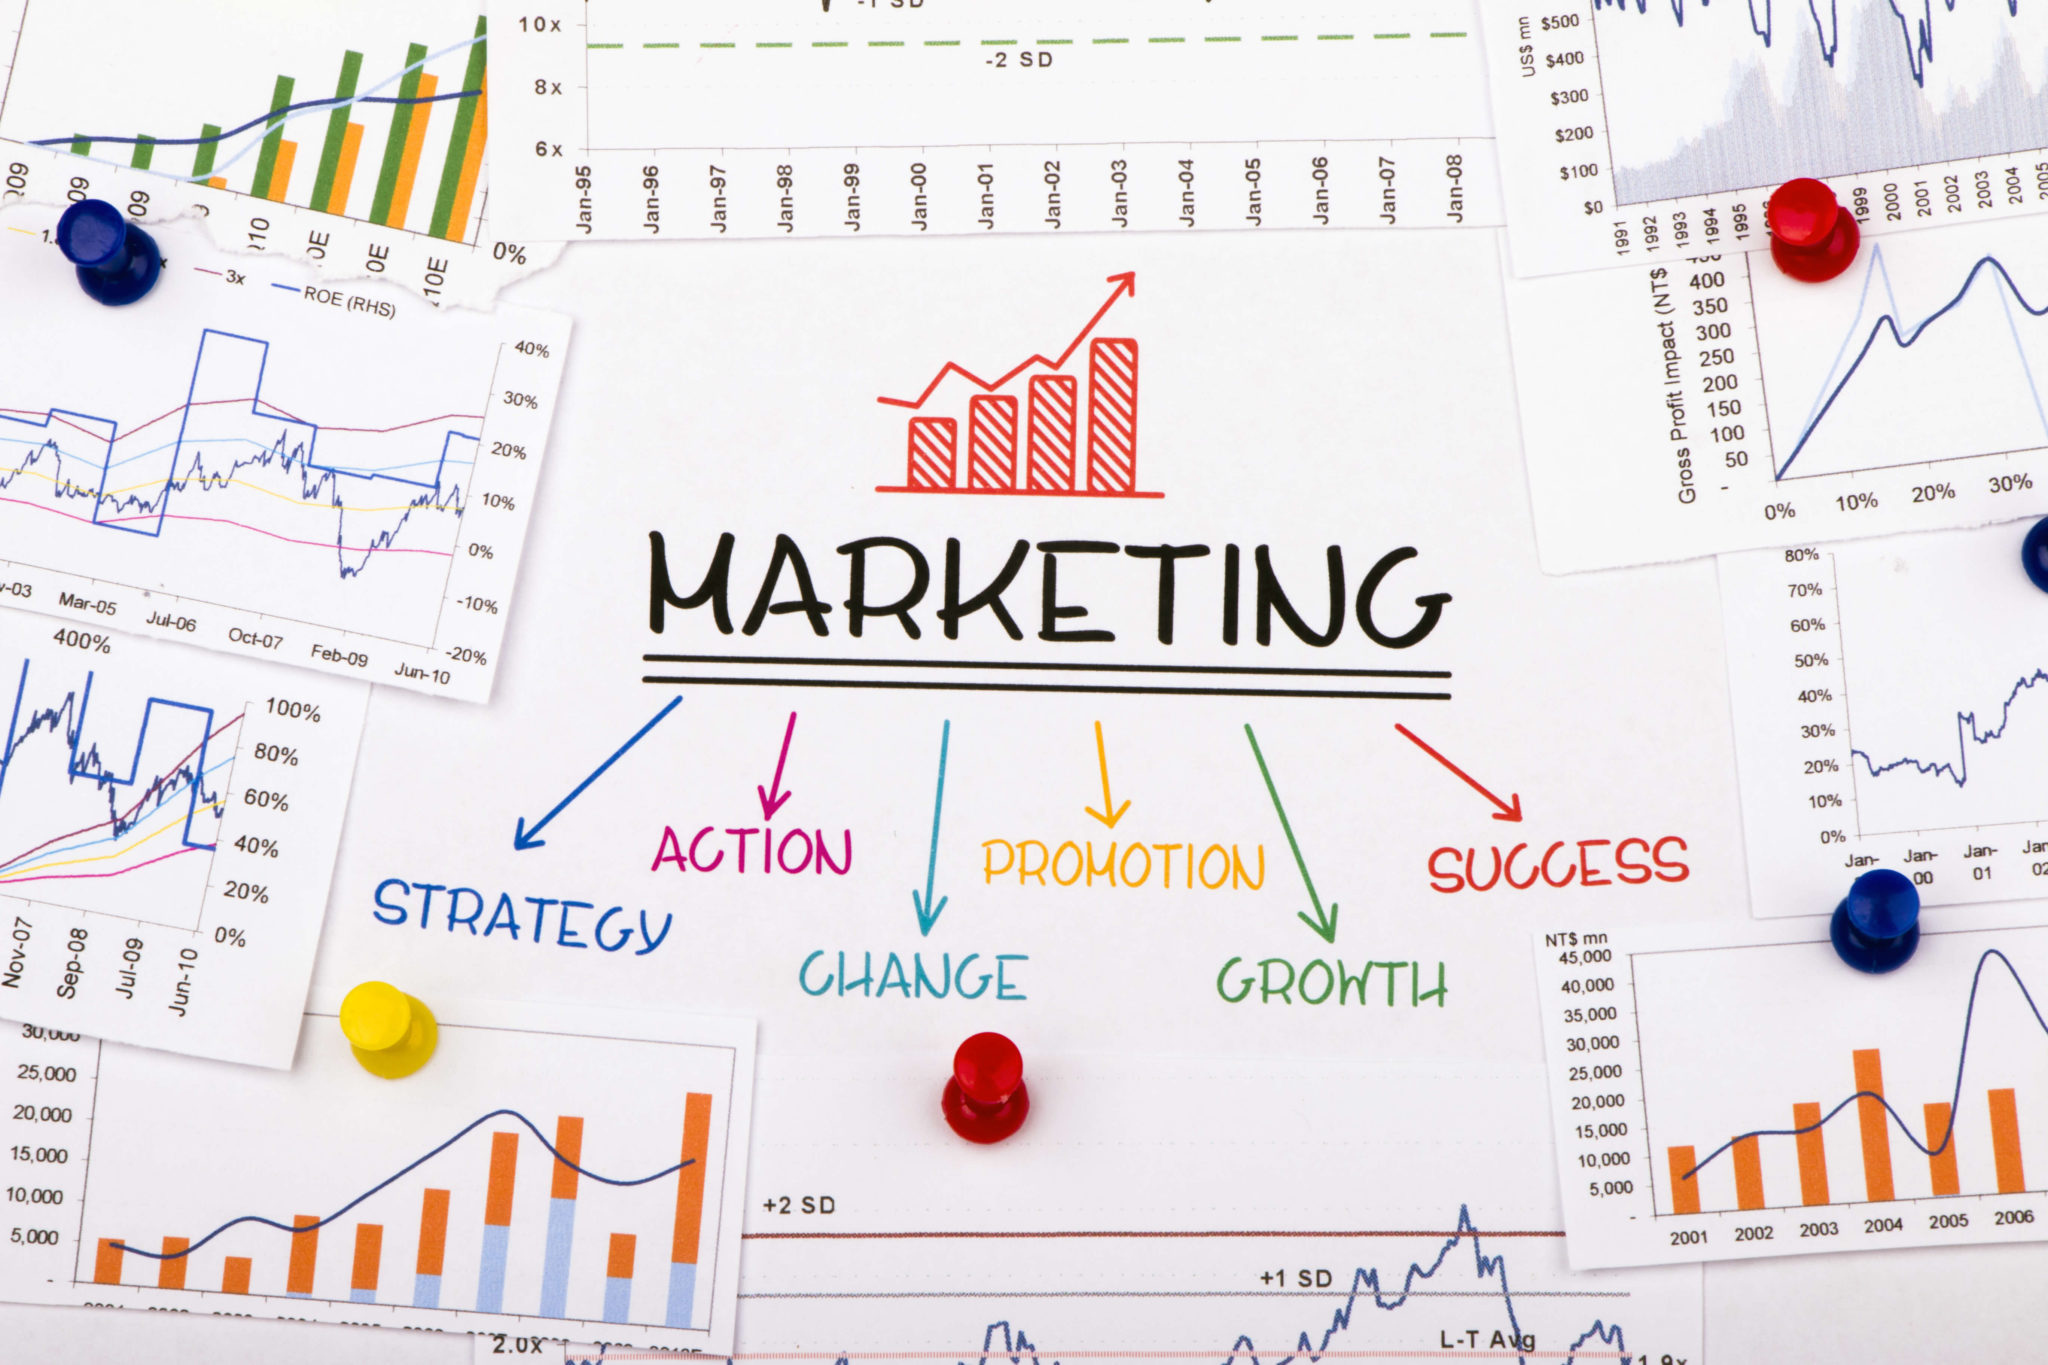 Benefits of Digital Marketing Strategy